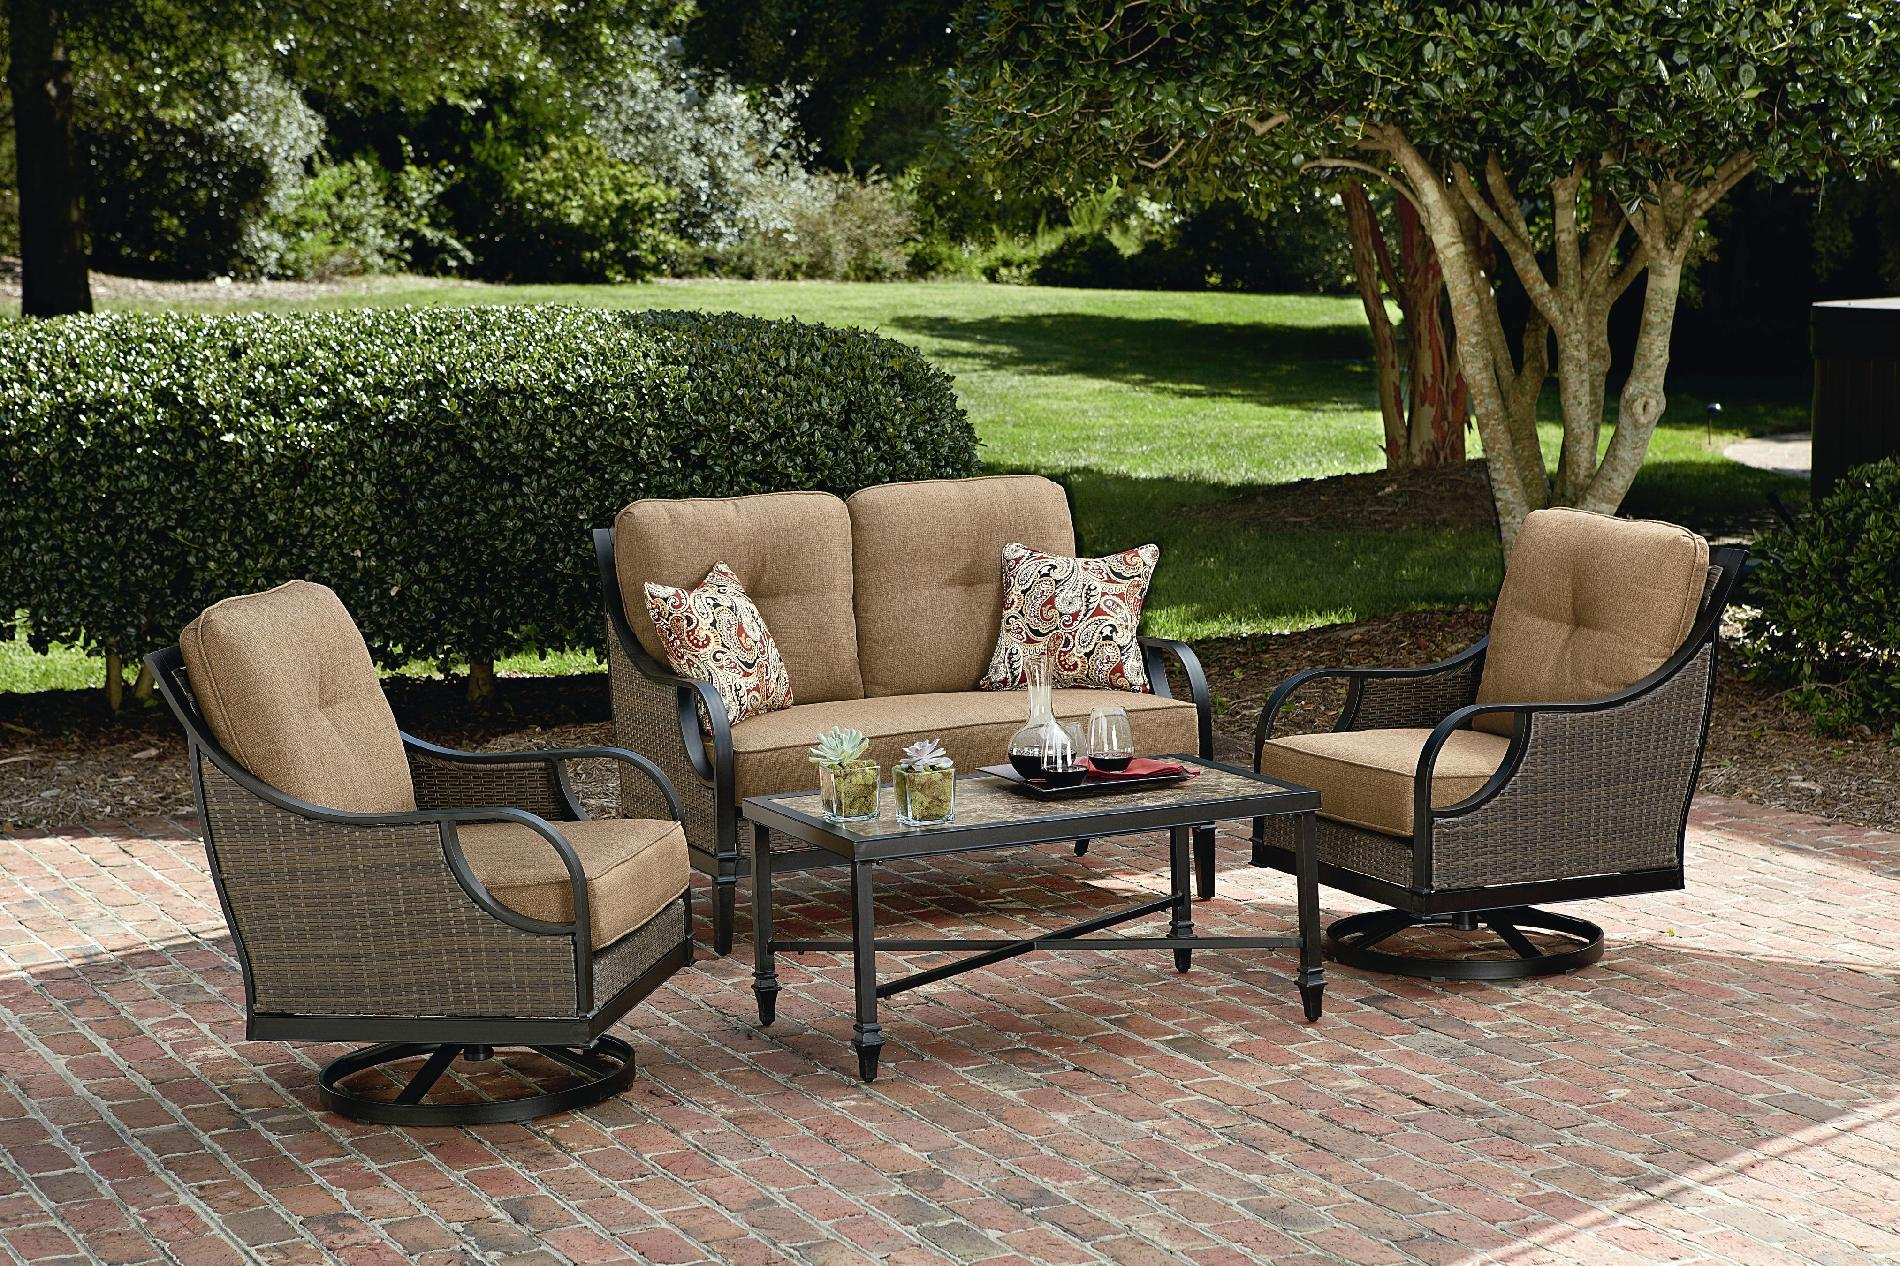 Patio Furniture Phoenix | Sears Oil Change Coupons | Sears Patio Furniture